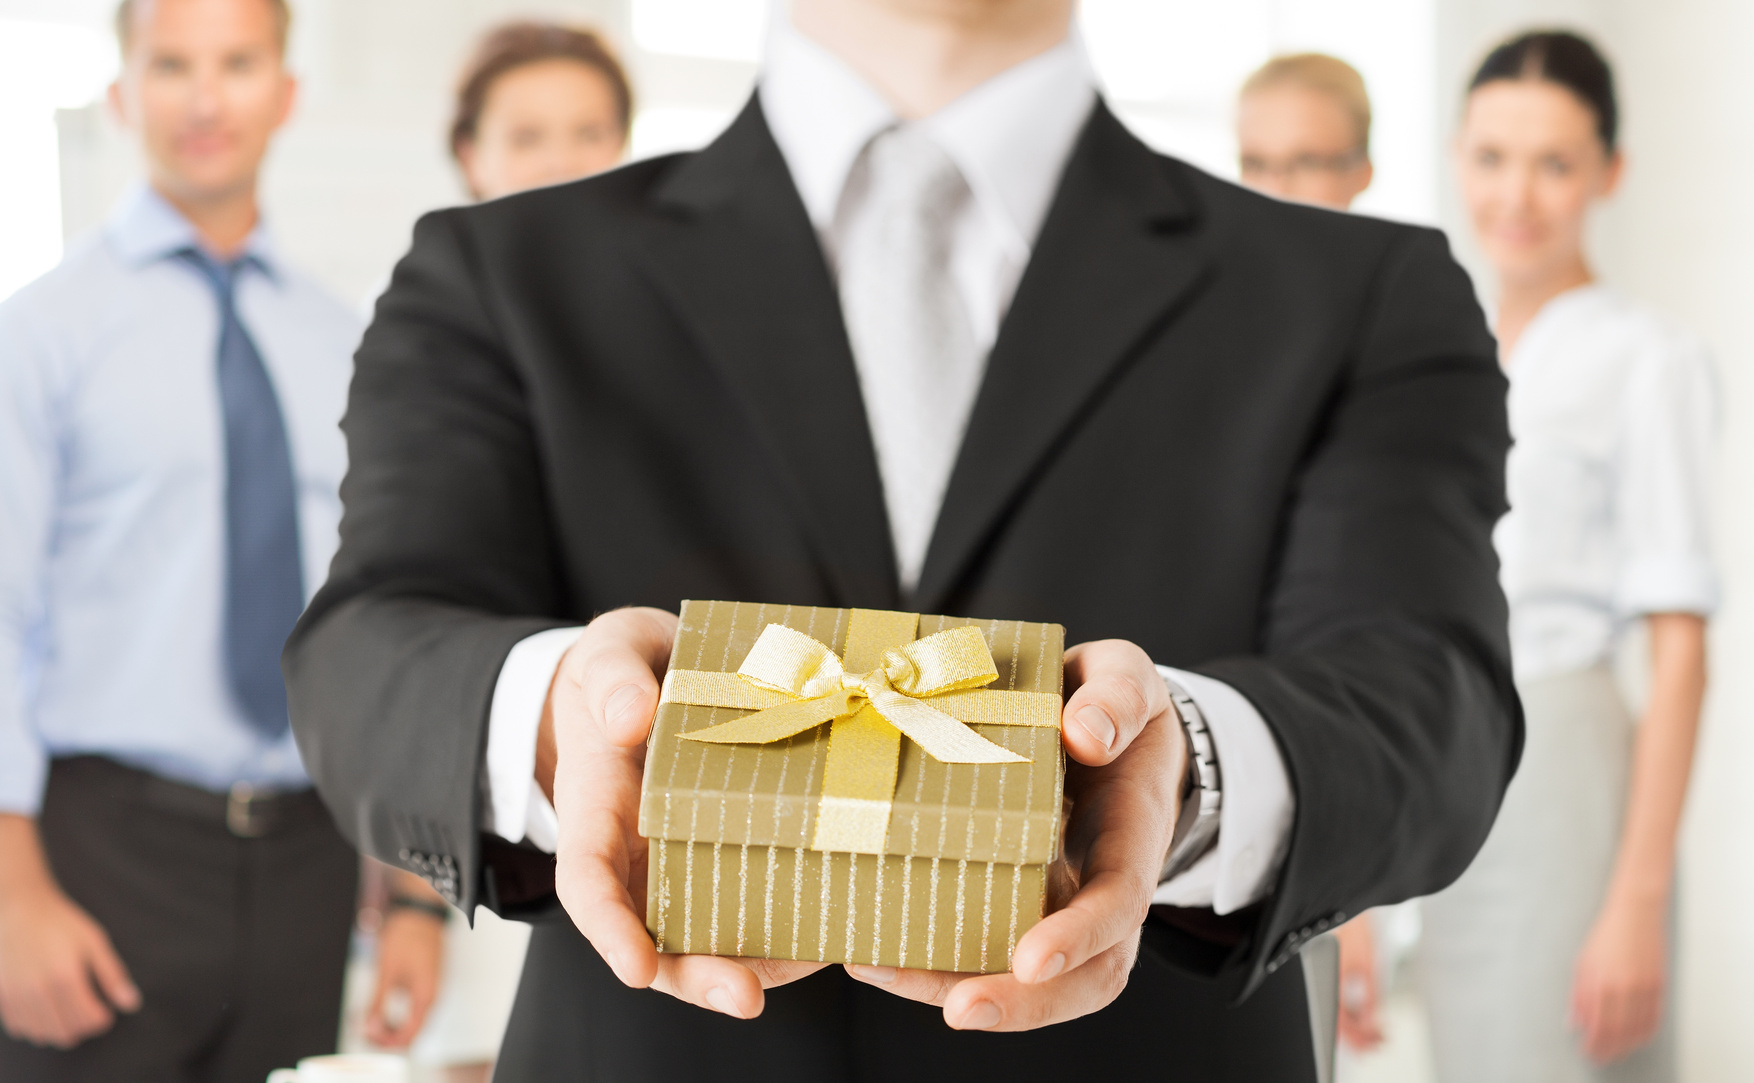 Avoid these Mistakes when Giving Corporate Gifts